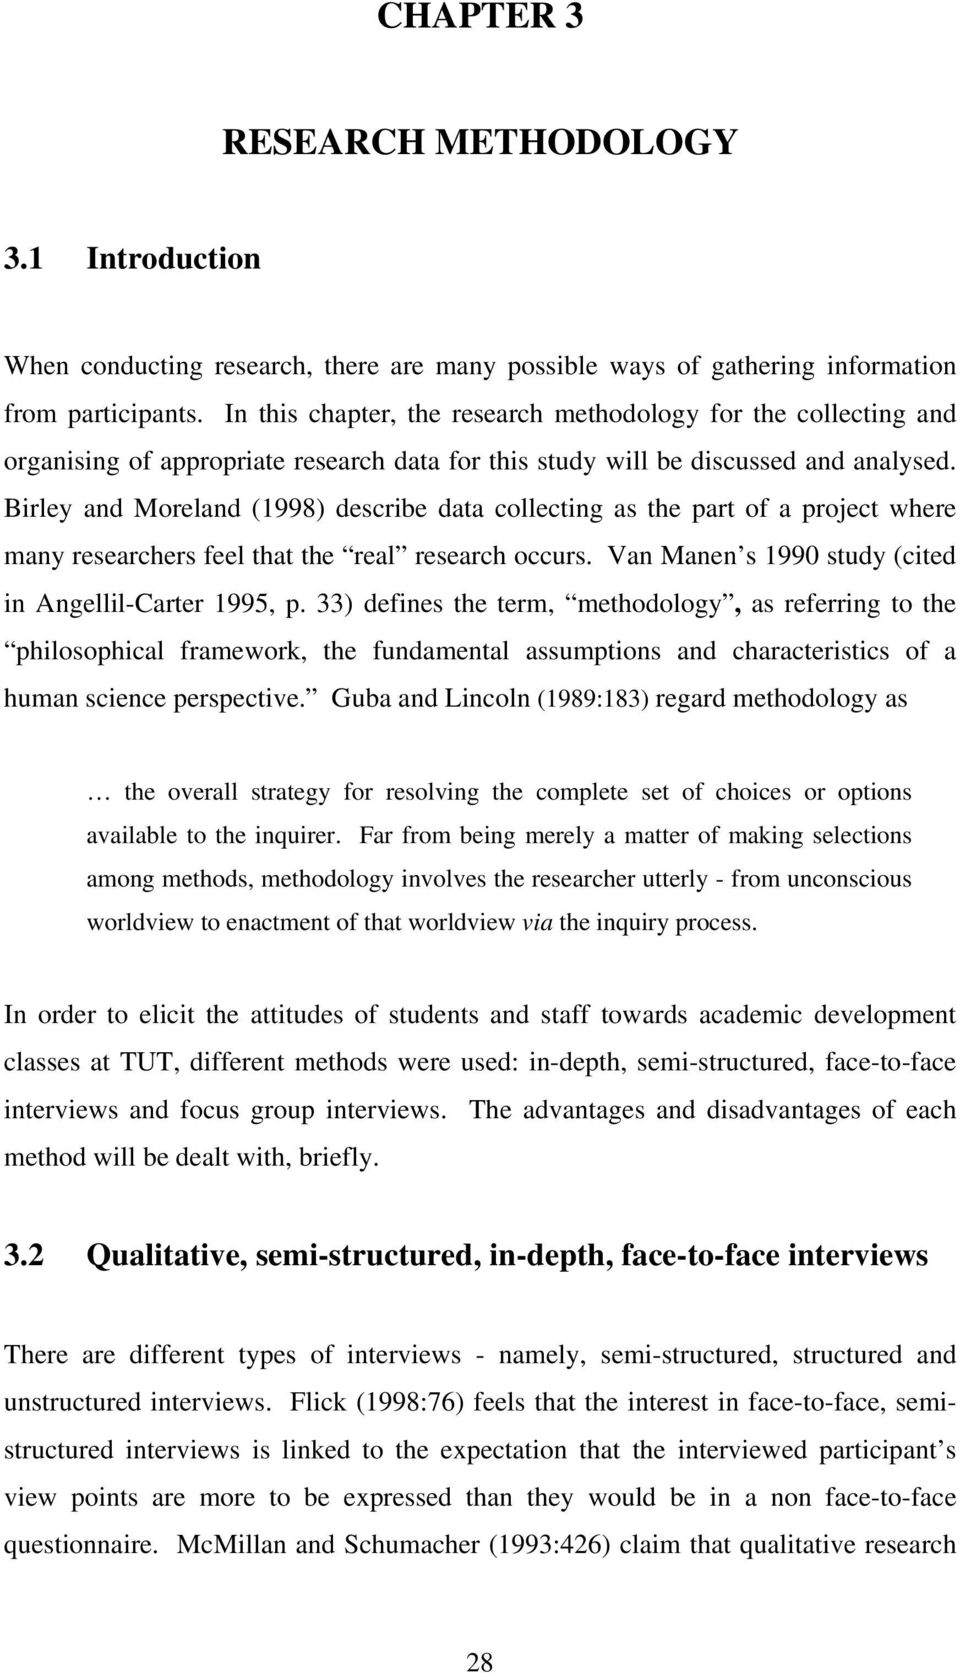 Birley and Moreland (1998) describe data collecting as the part of a project where many researchers feel that the real research occurs. Van Manen s 1990 study (cited in Angellil-Carter 1995, p.